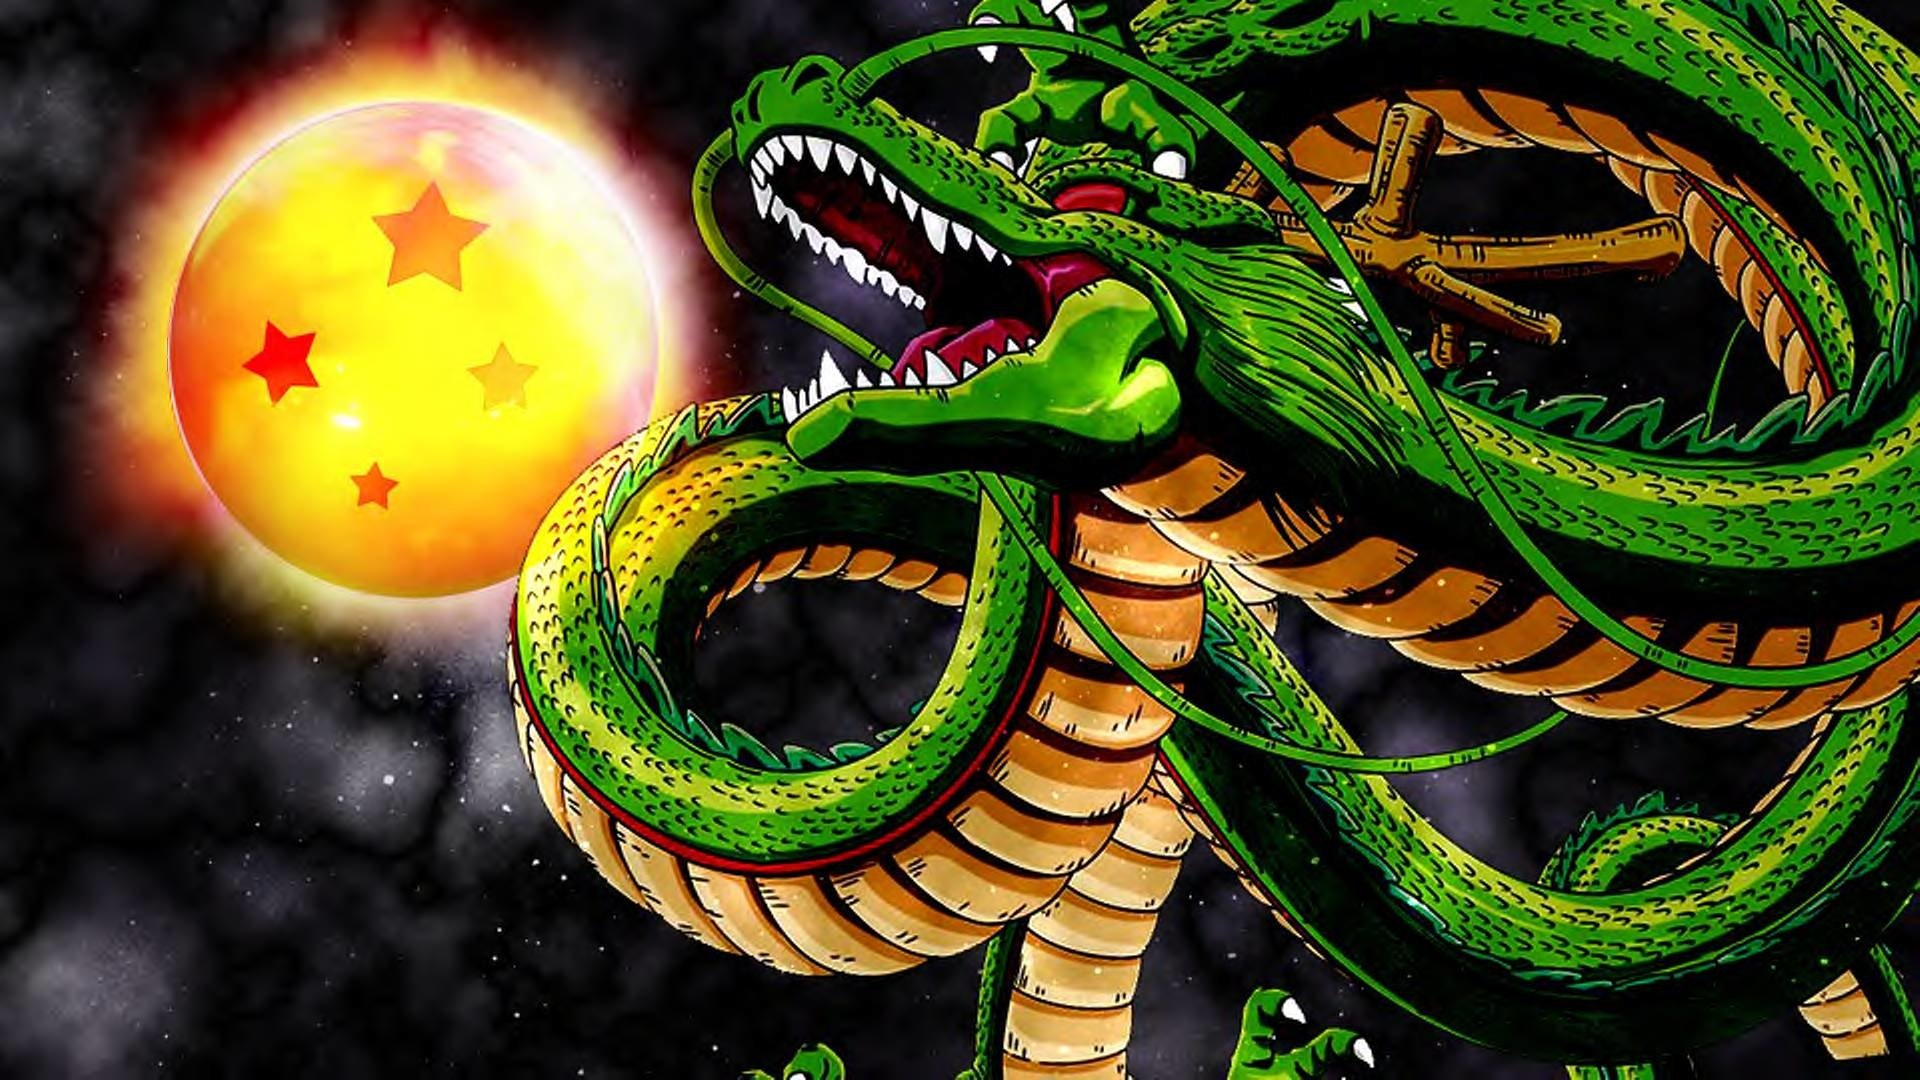 Dragon Ball Z Iphone Wallpaper Shenron Dragon Ball Full Hd Wallpaper And Background